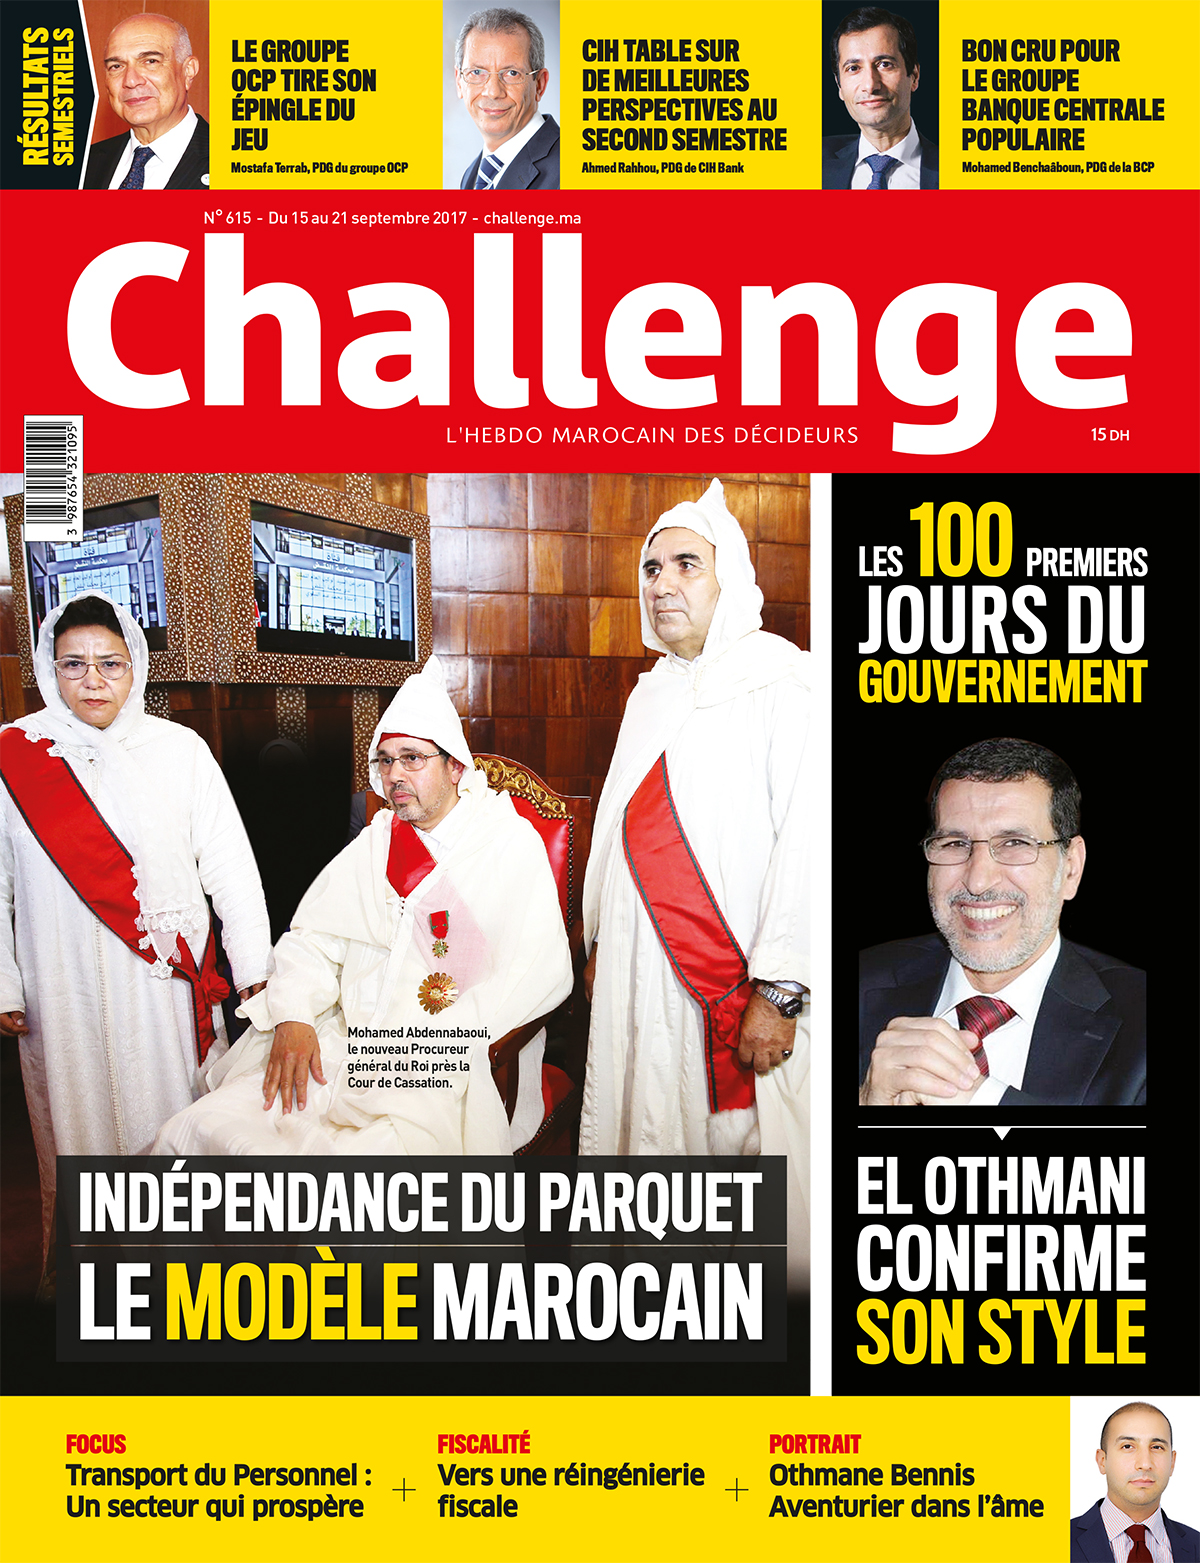 couverture-574.jpg